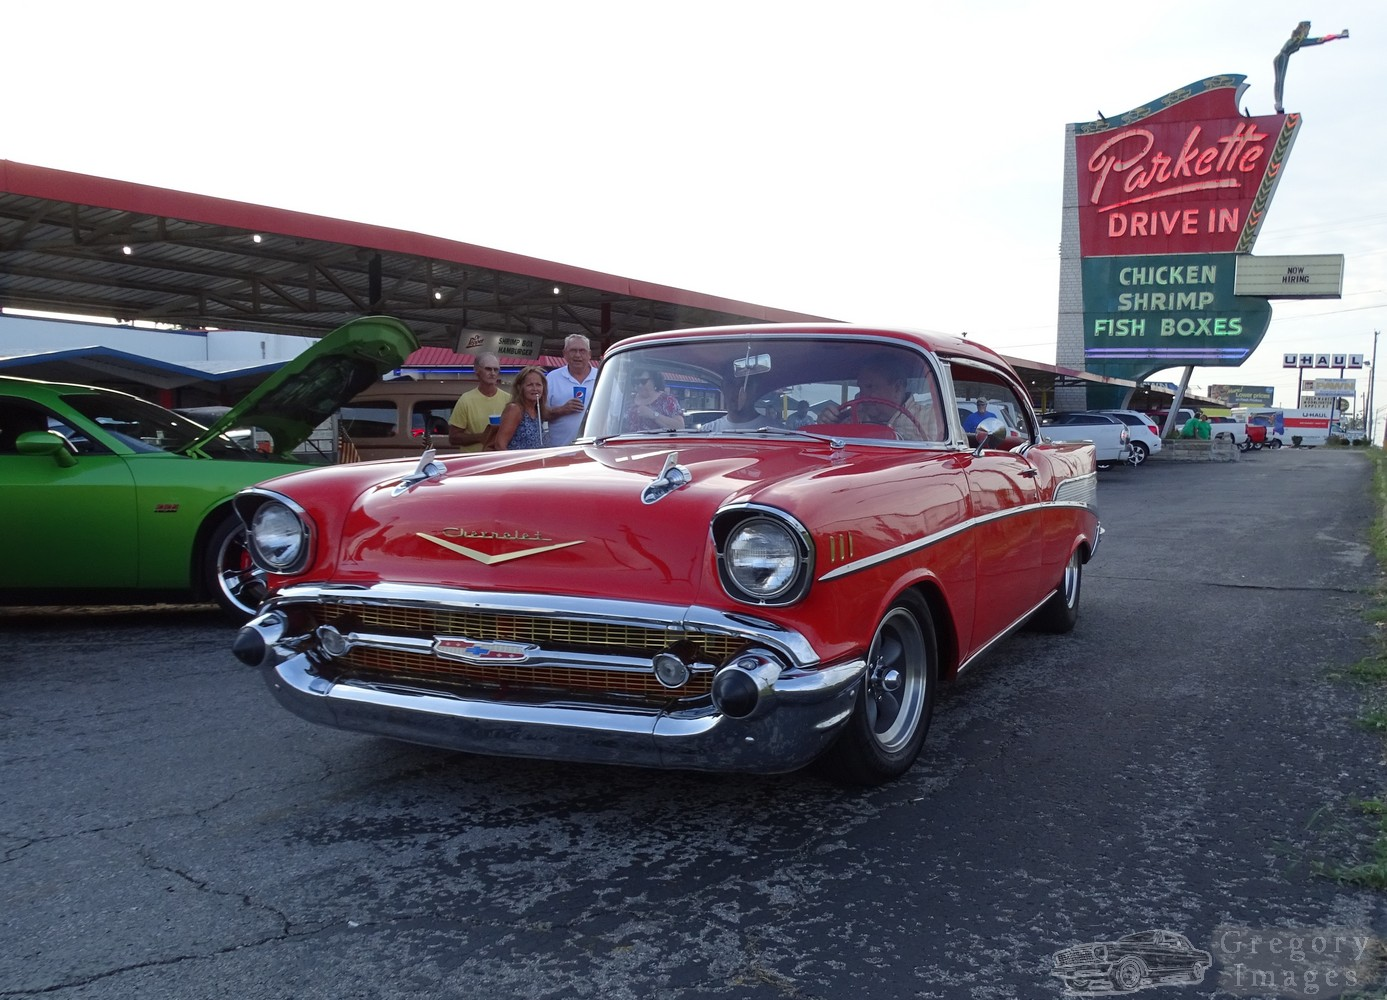 Cruise Coverage: We Hit Two Cool Cruise-In Events In The Same Day – Lots Of Great Cars And Trucks!